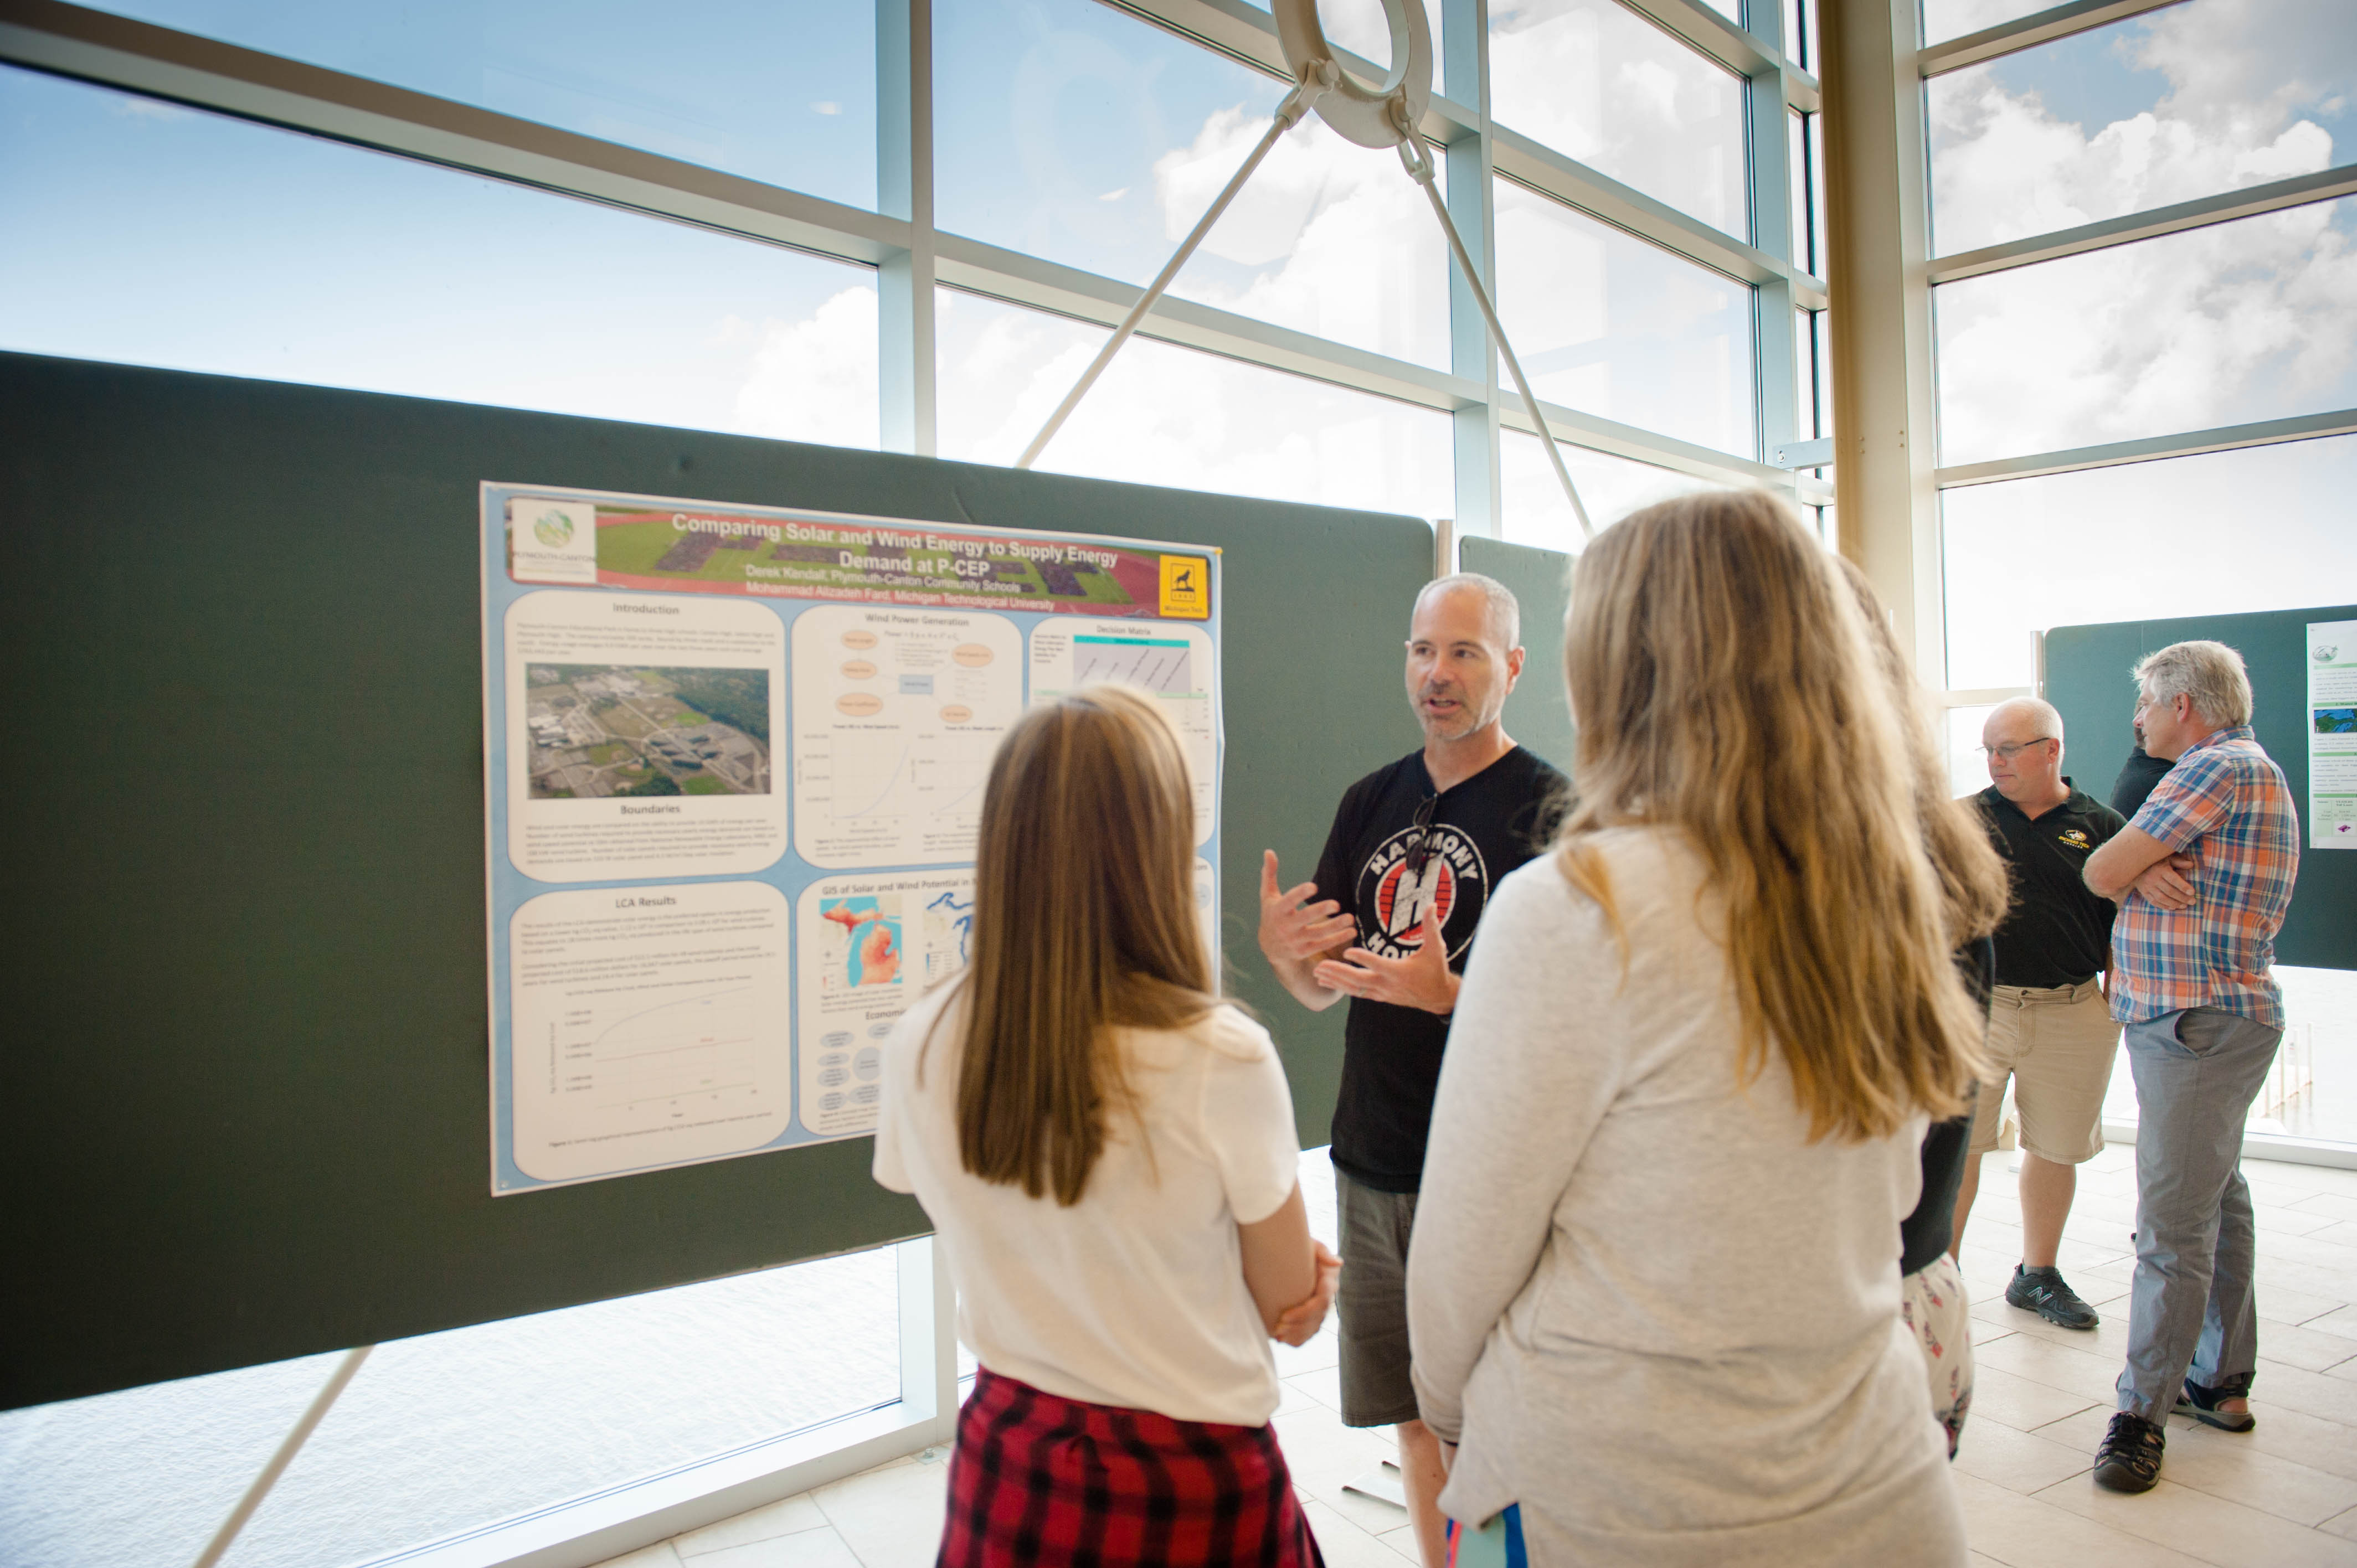 A poster presenter and two onlookers